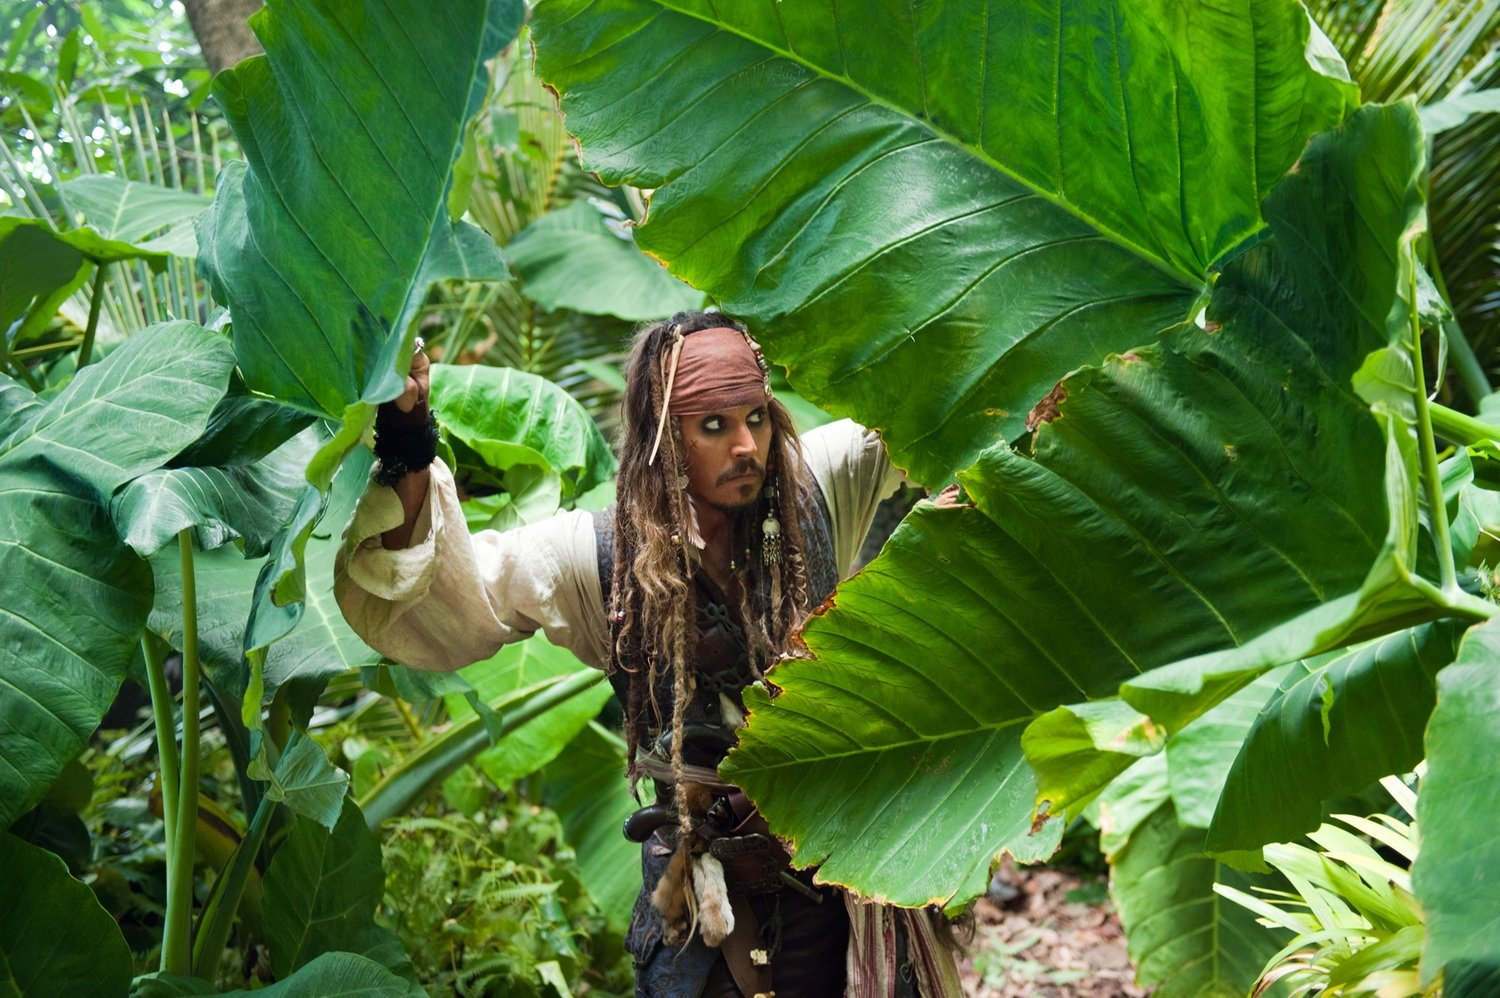 New Images From Pirates Of The Caribbean: On Stranger Tides